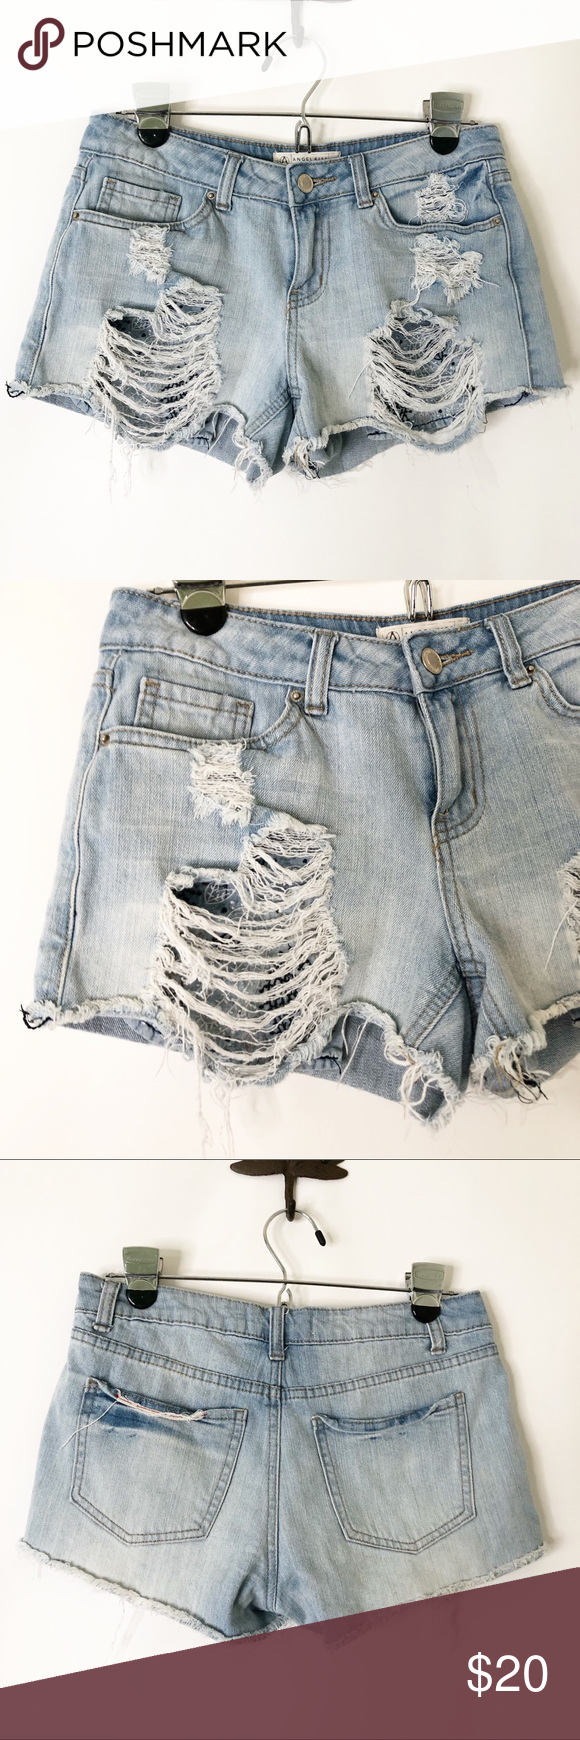 """4 for $25 ❤️ Angel Kiss distressed jean shorts 29"""" waist, 8"""" rise, 2.5"""" rise. 99% cotton, 1% Spandex.  Featured on my Instagram @relovemaui (see last pic)!  ❤️ Bundle with other items from my closet for the best deal and combined shipping! ❤️ To get 4 items for $25, look for items with the heart (❤️) in the title!  #1192 Angel Kiss Shorts Jean Shorts"""